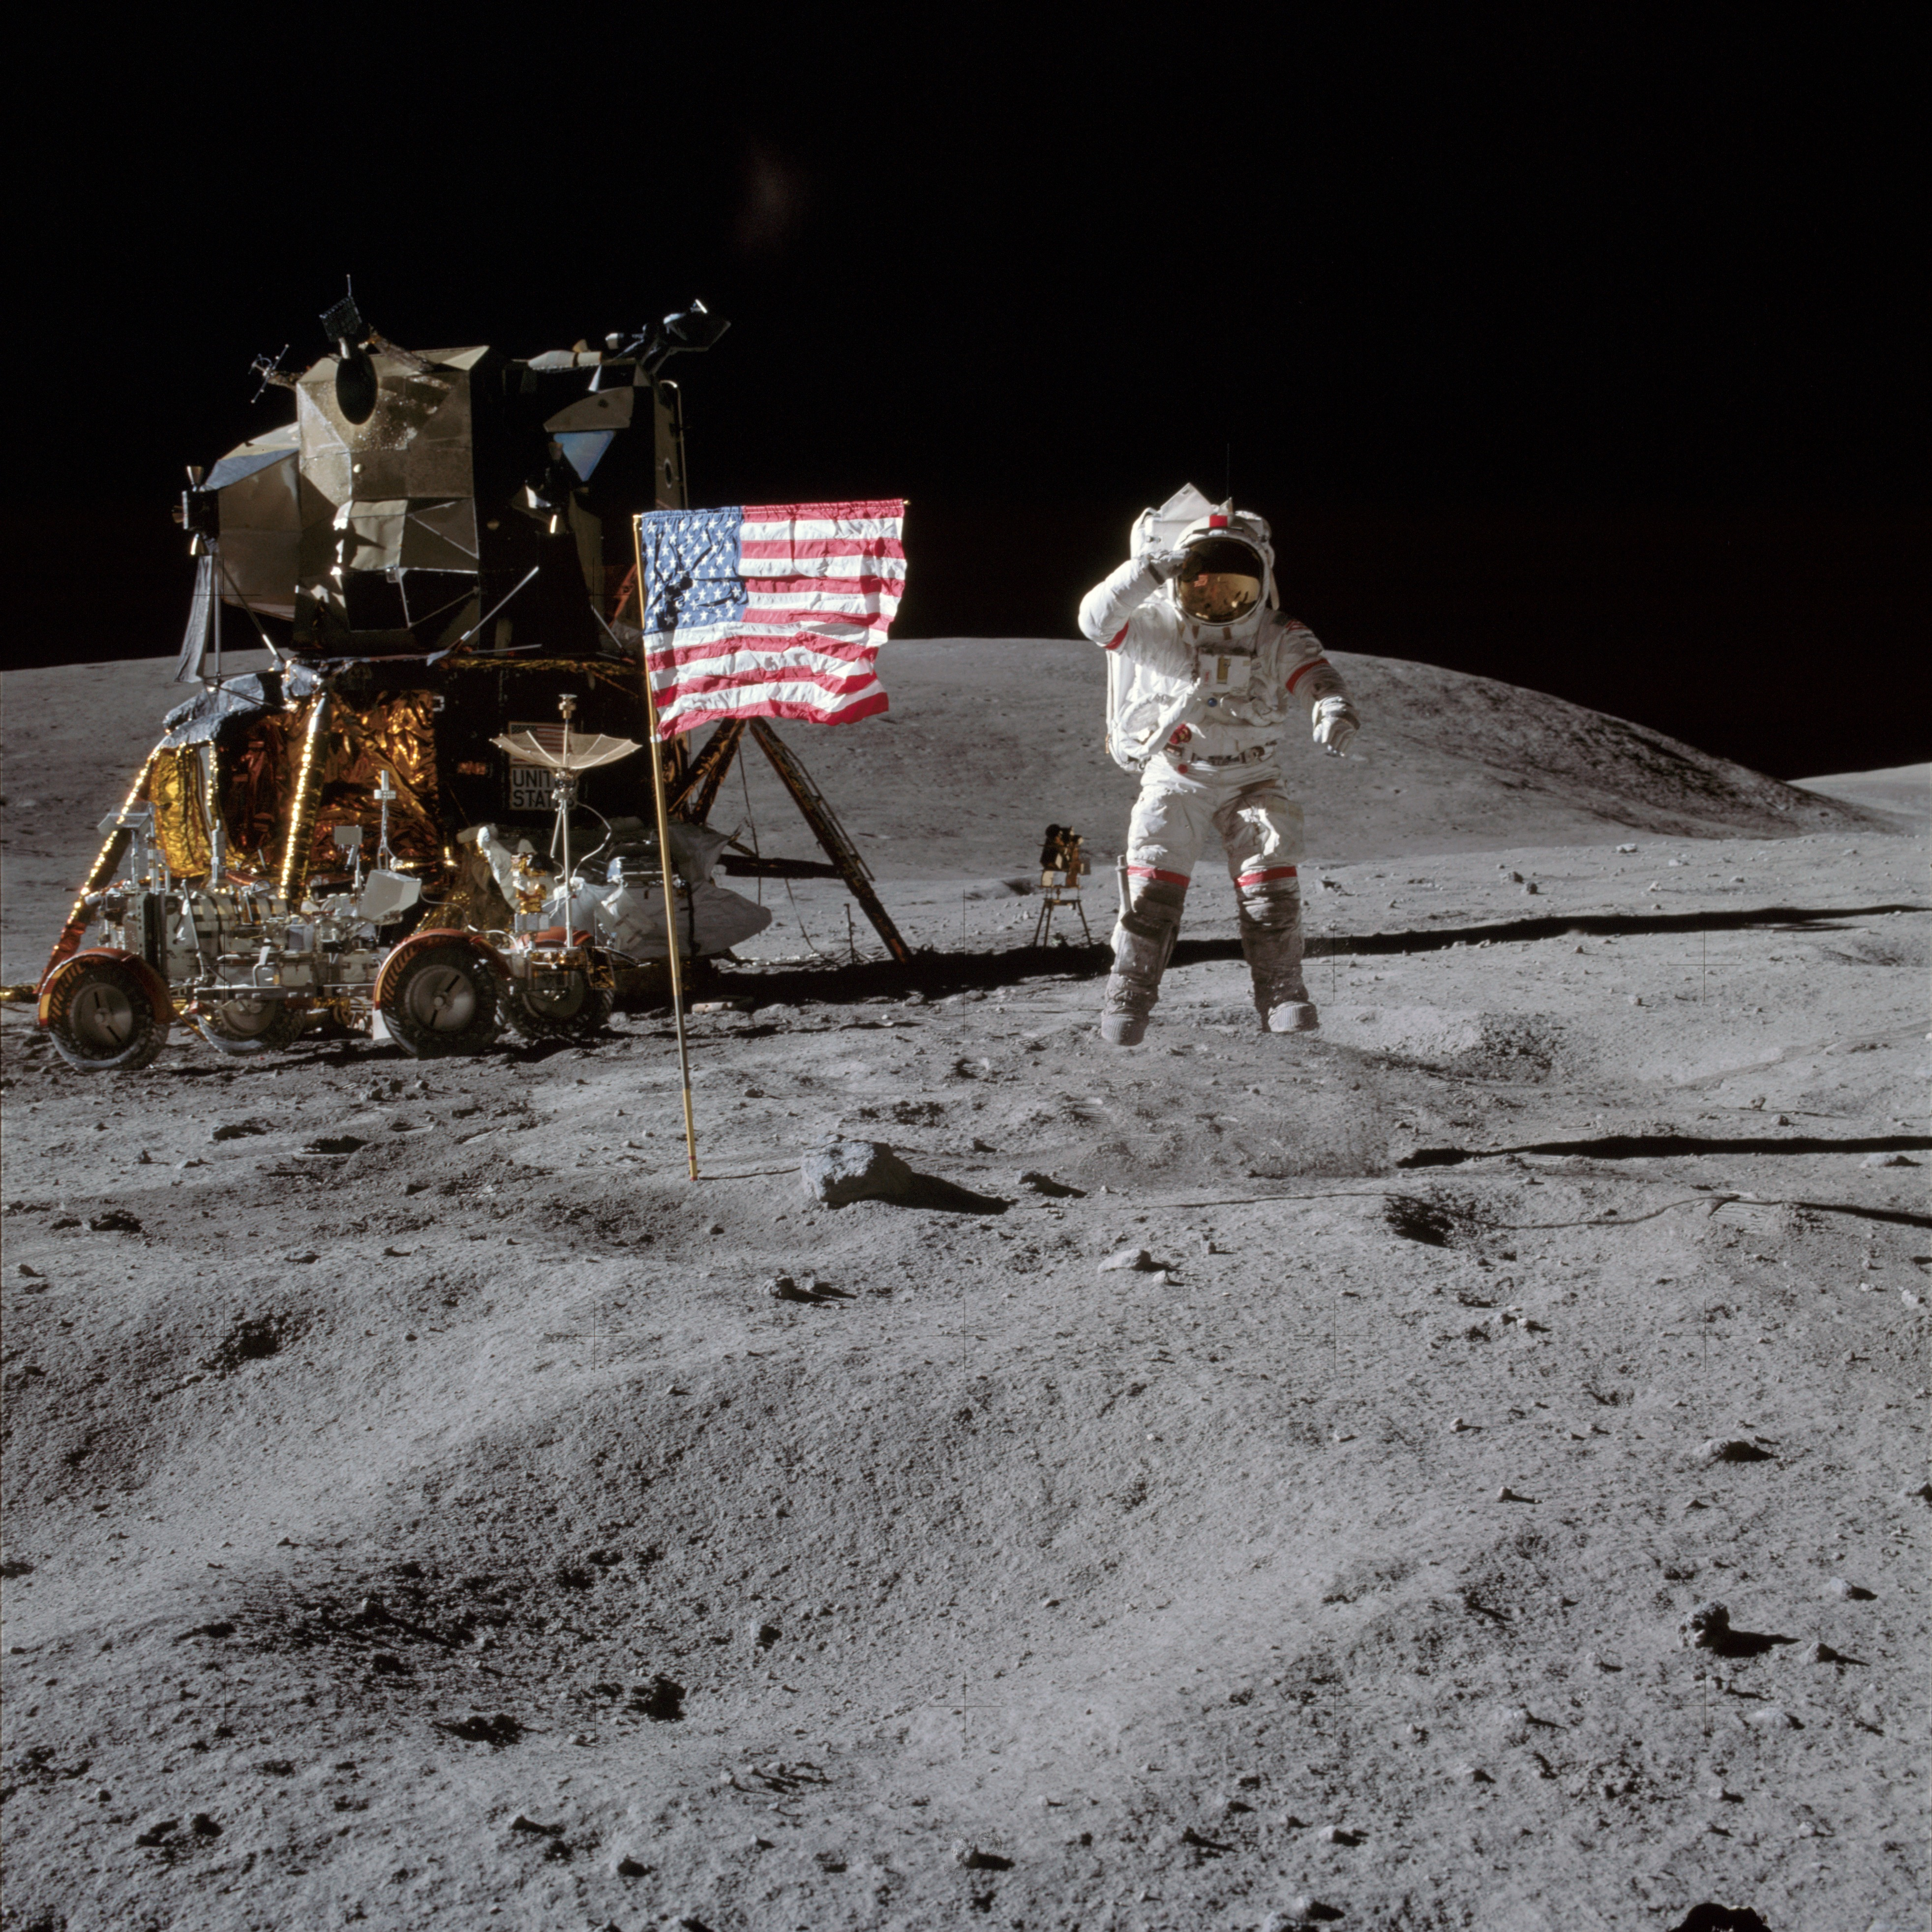 Astronaut John Young leaps from the lunar surface.